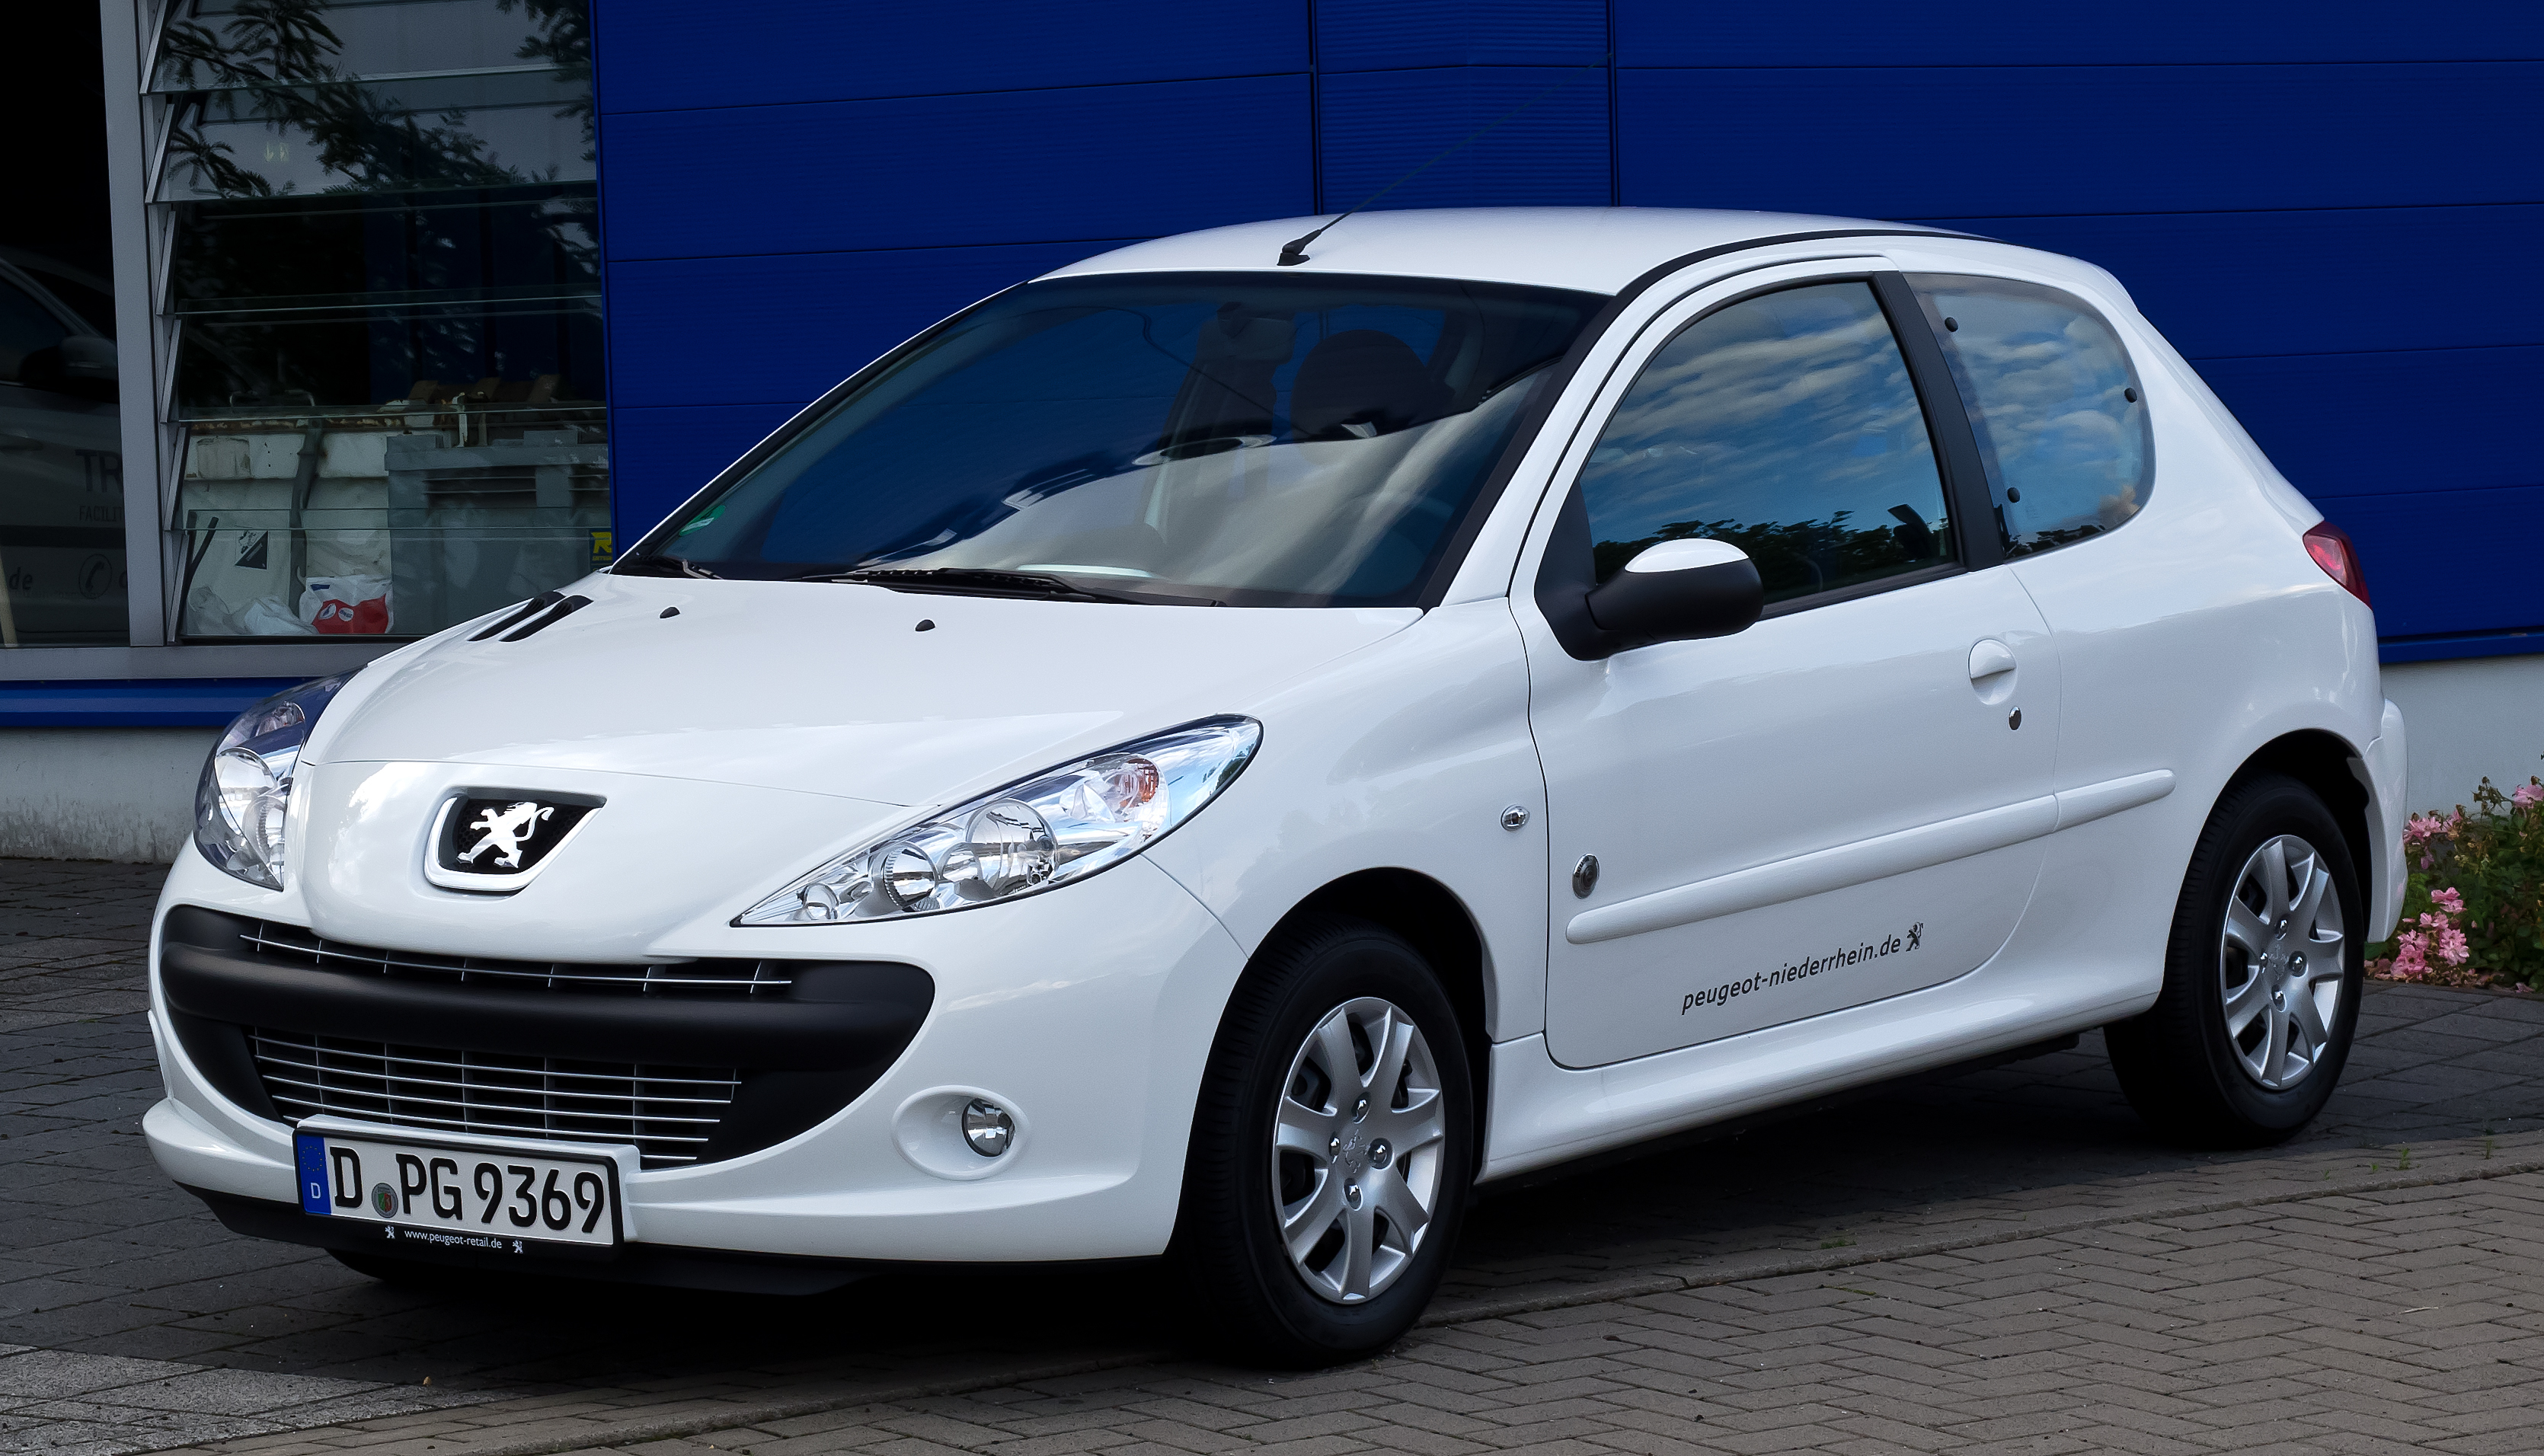 Peugeot 206 Related Images Start 200 Weili Automotive